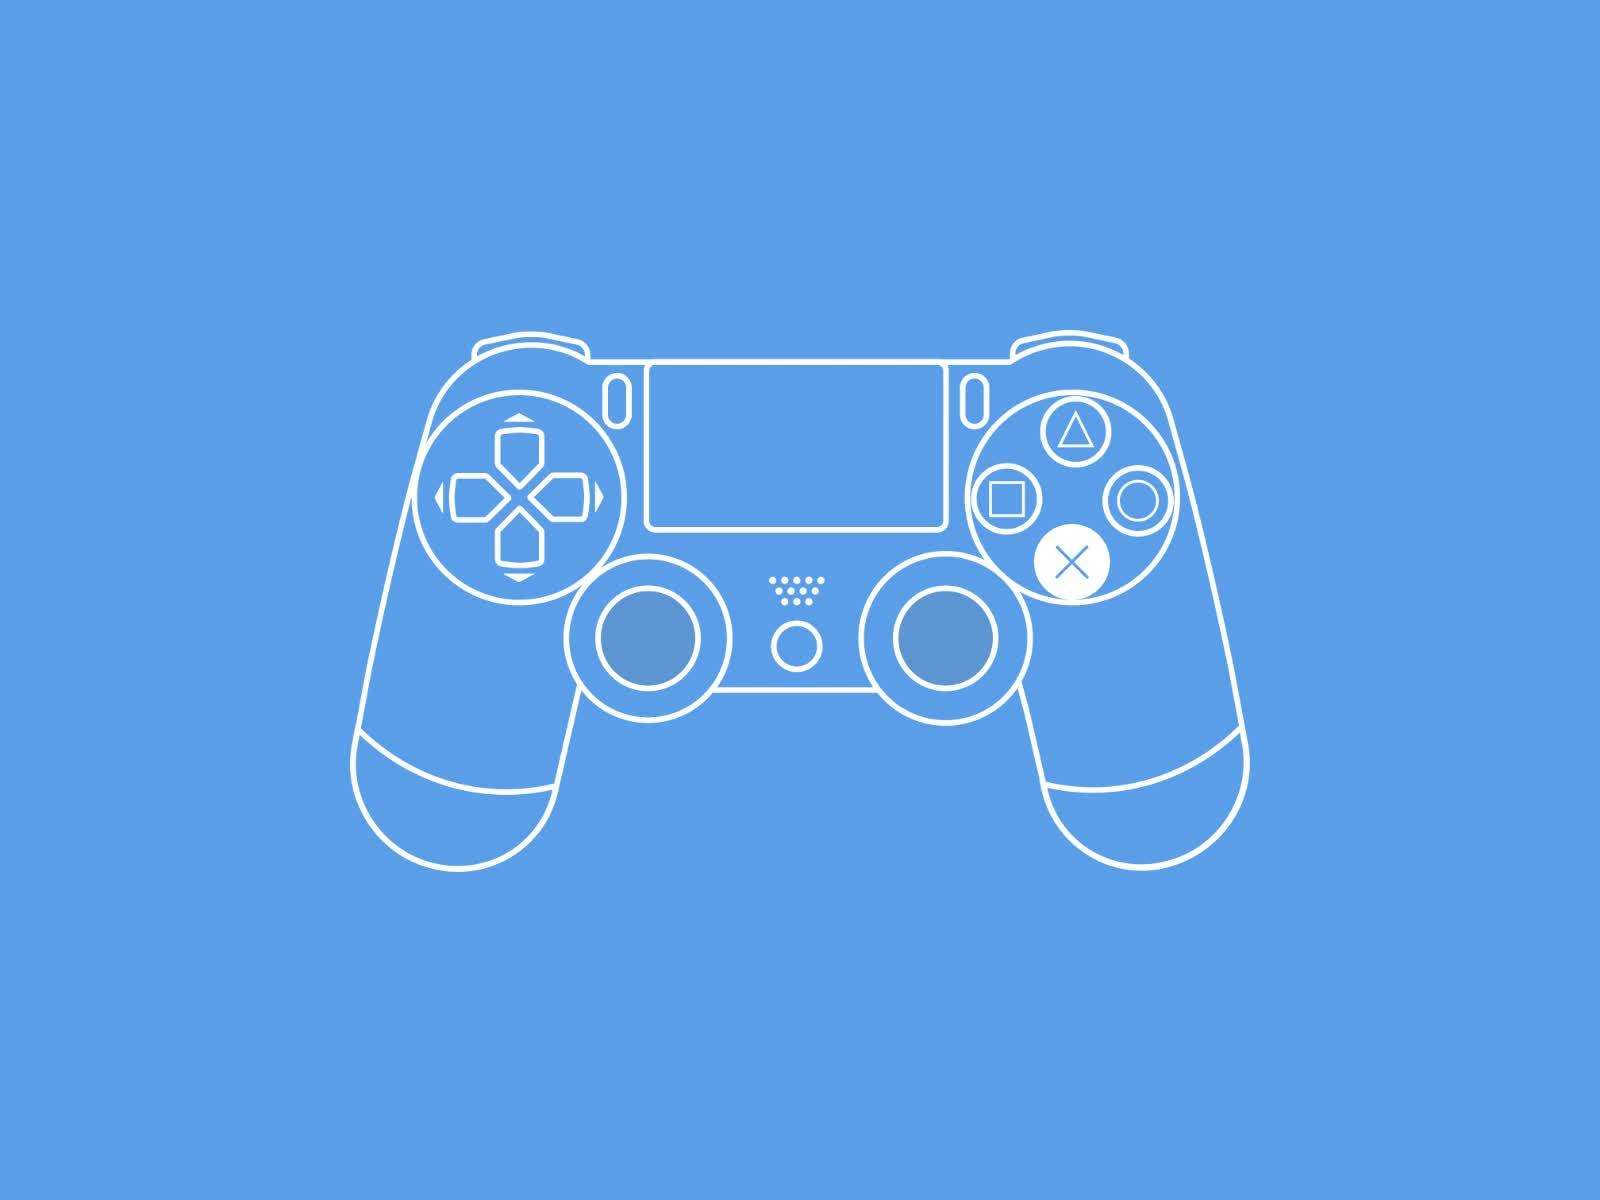 ps4, PS4 Controller GIFs